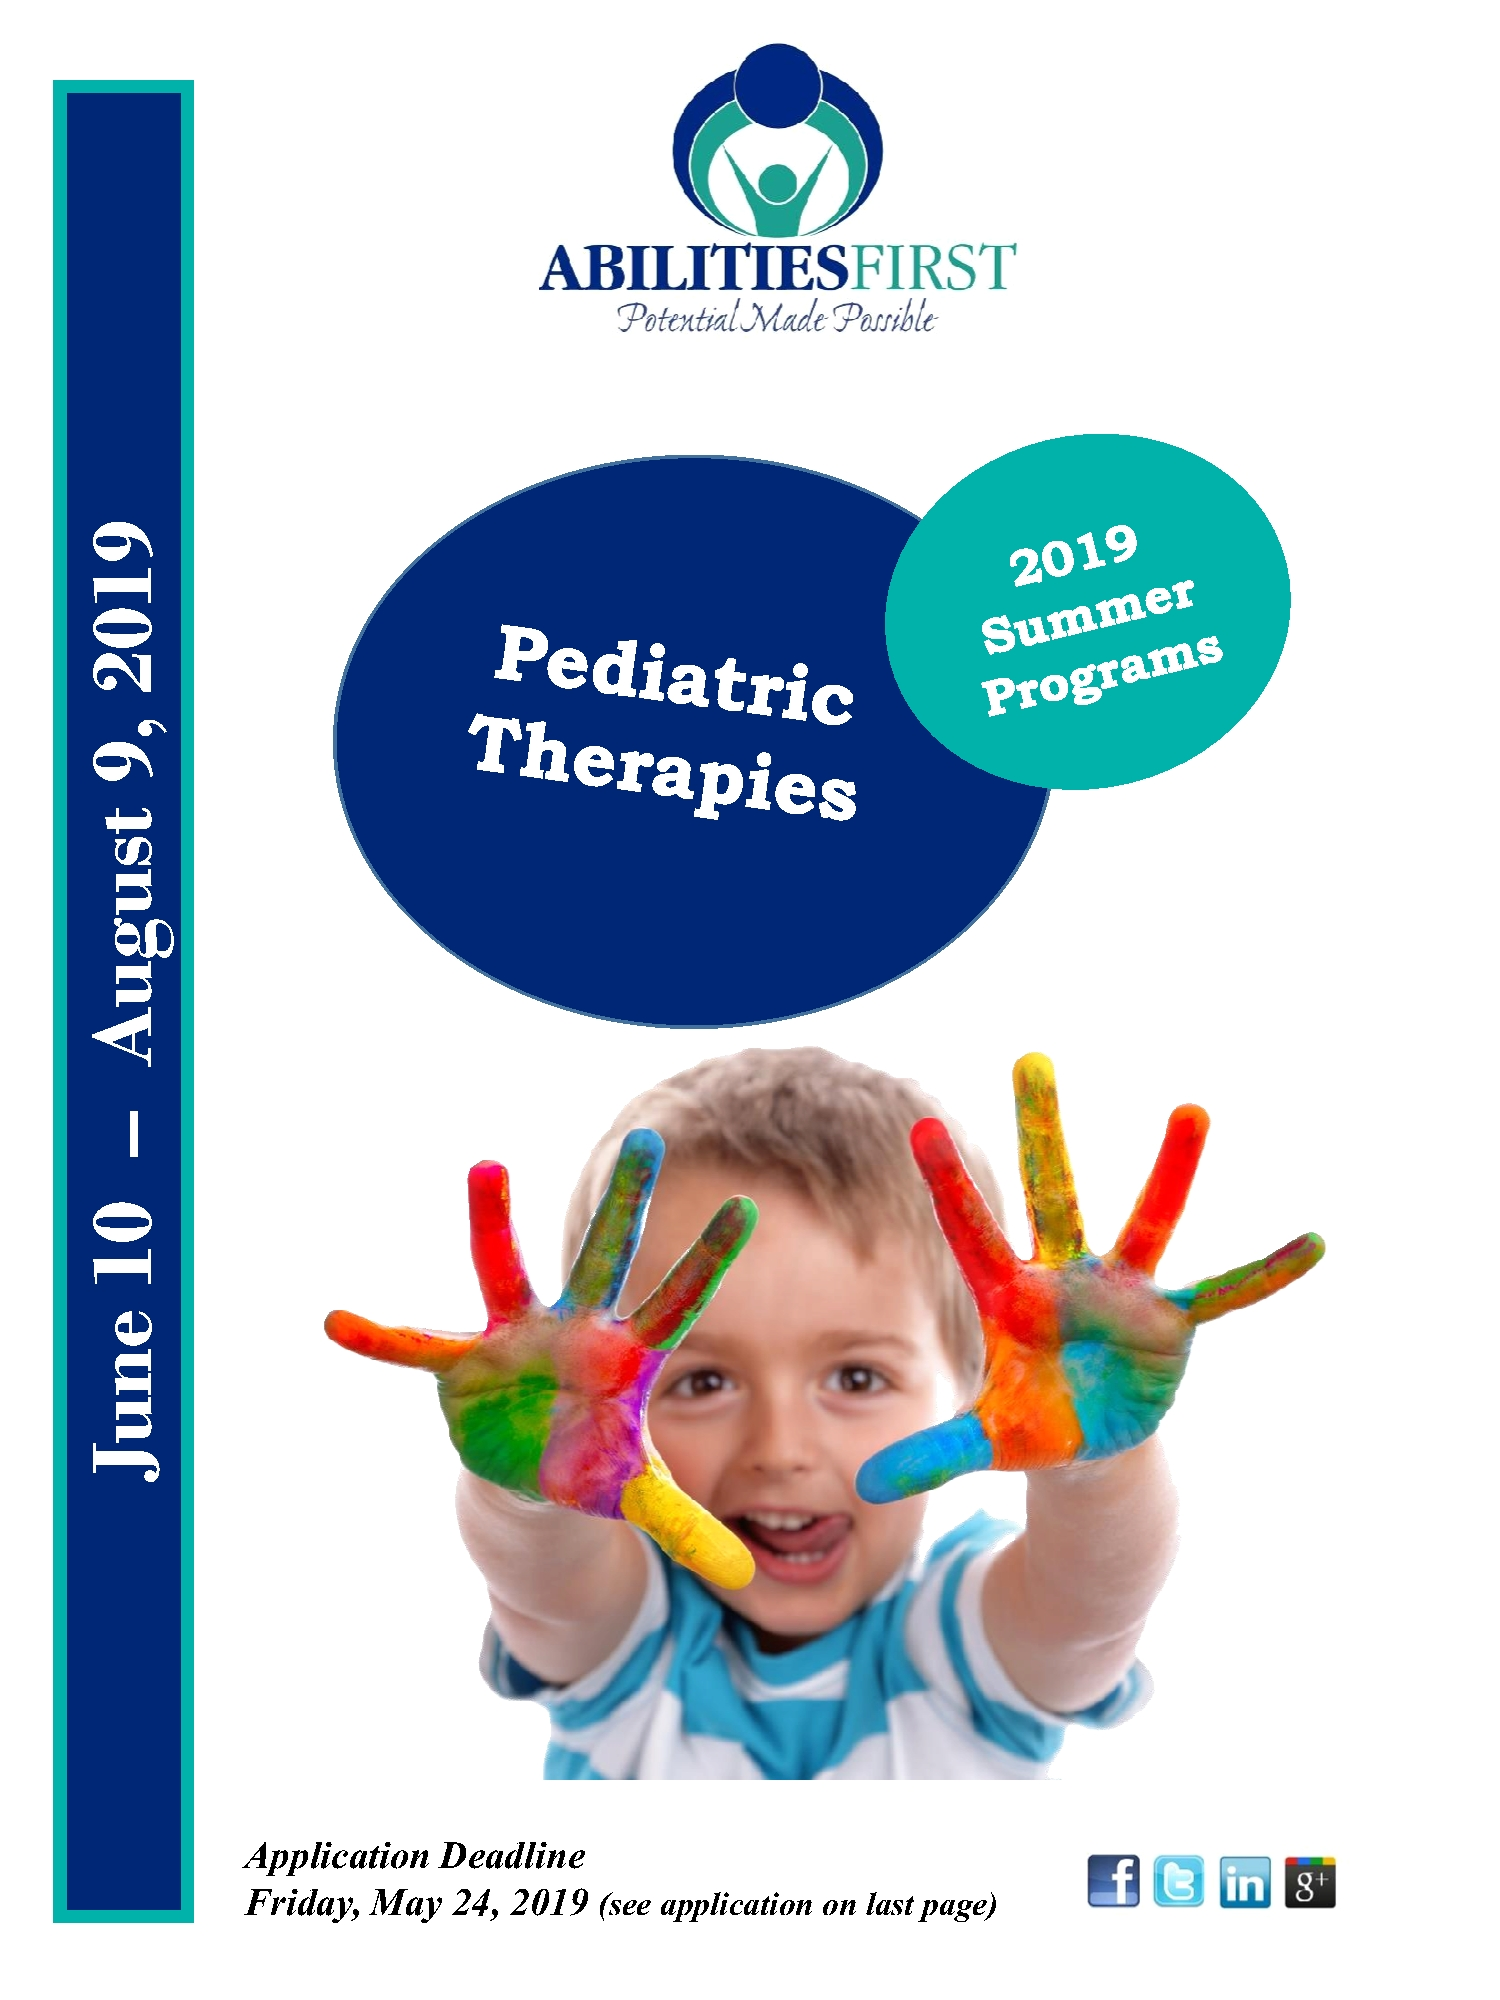 2019 Summer Programs Pediatric Therapies 1